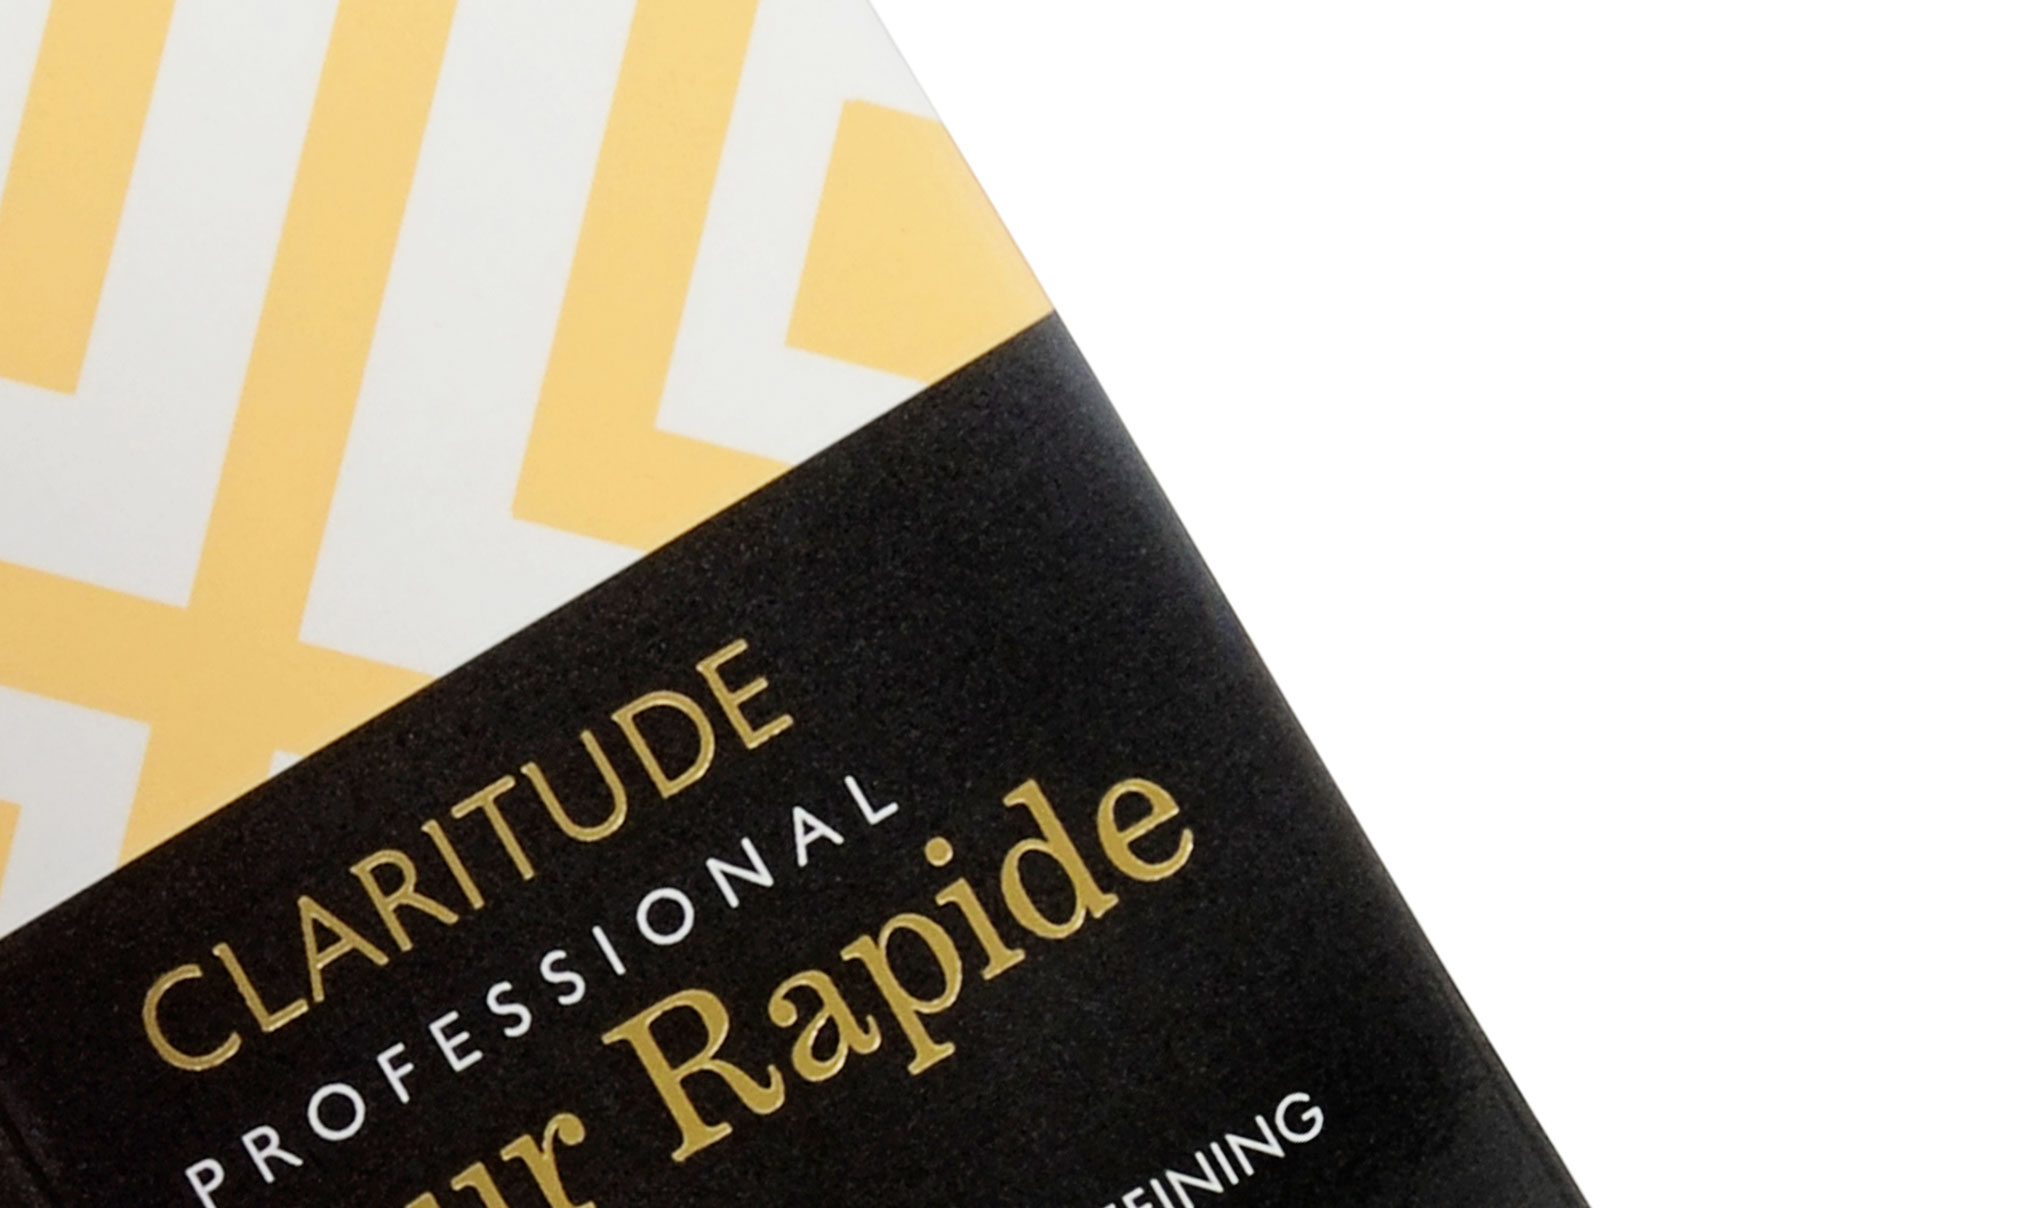 Geometric Packaging Design for Claritude Root Touch-up. Image shows a tight crop shot of the blonde variation. Created by brand and packaging design agency - Flipflop Design Ltd